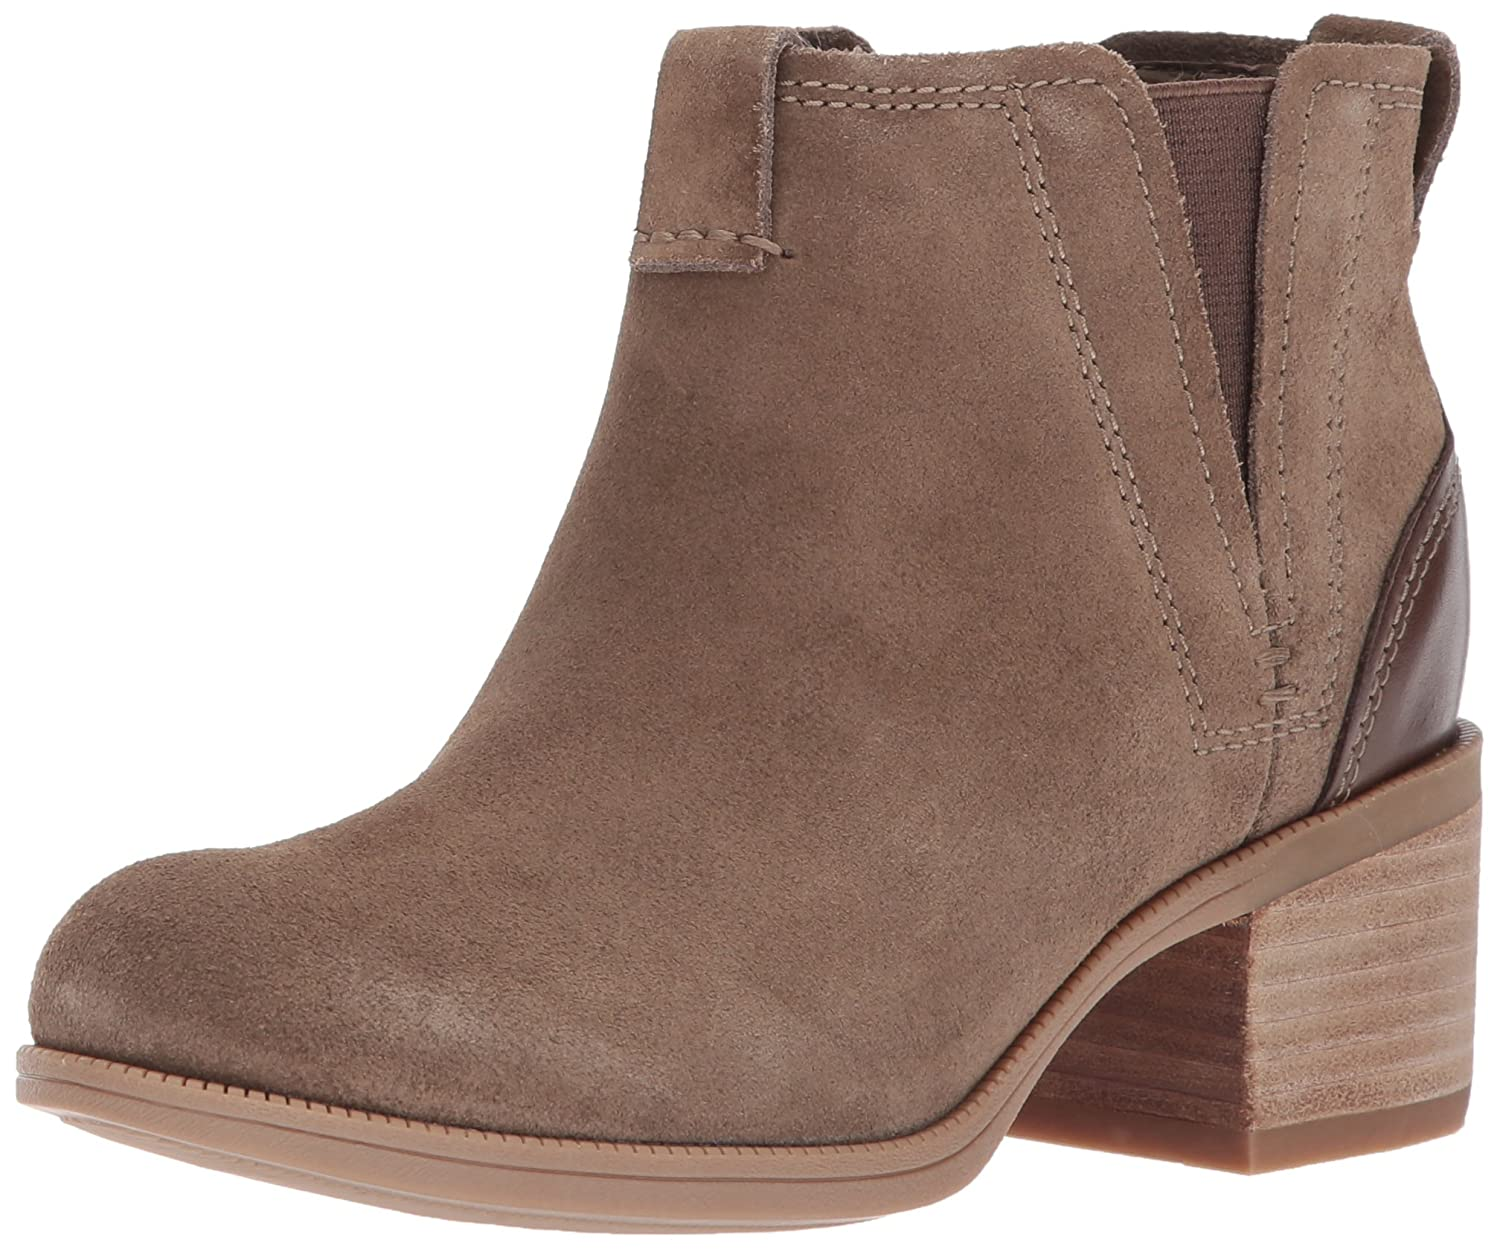 CLARKS Women's Maypearl Daisy Ankle Bootie B01MT1E5SS 7.5 B(M) US|Olive